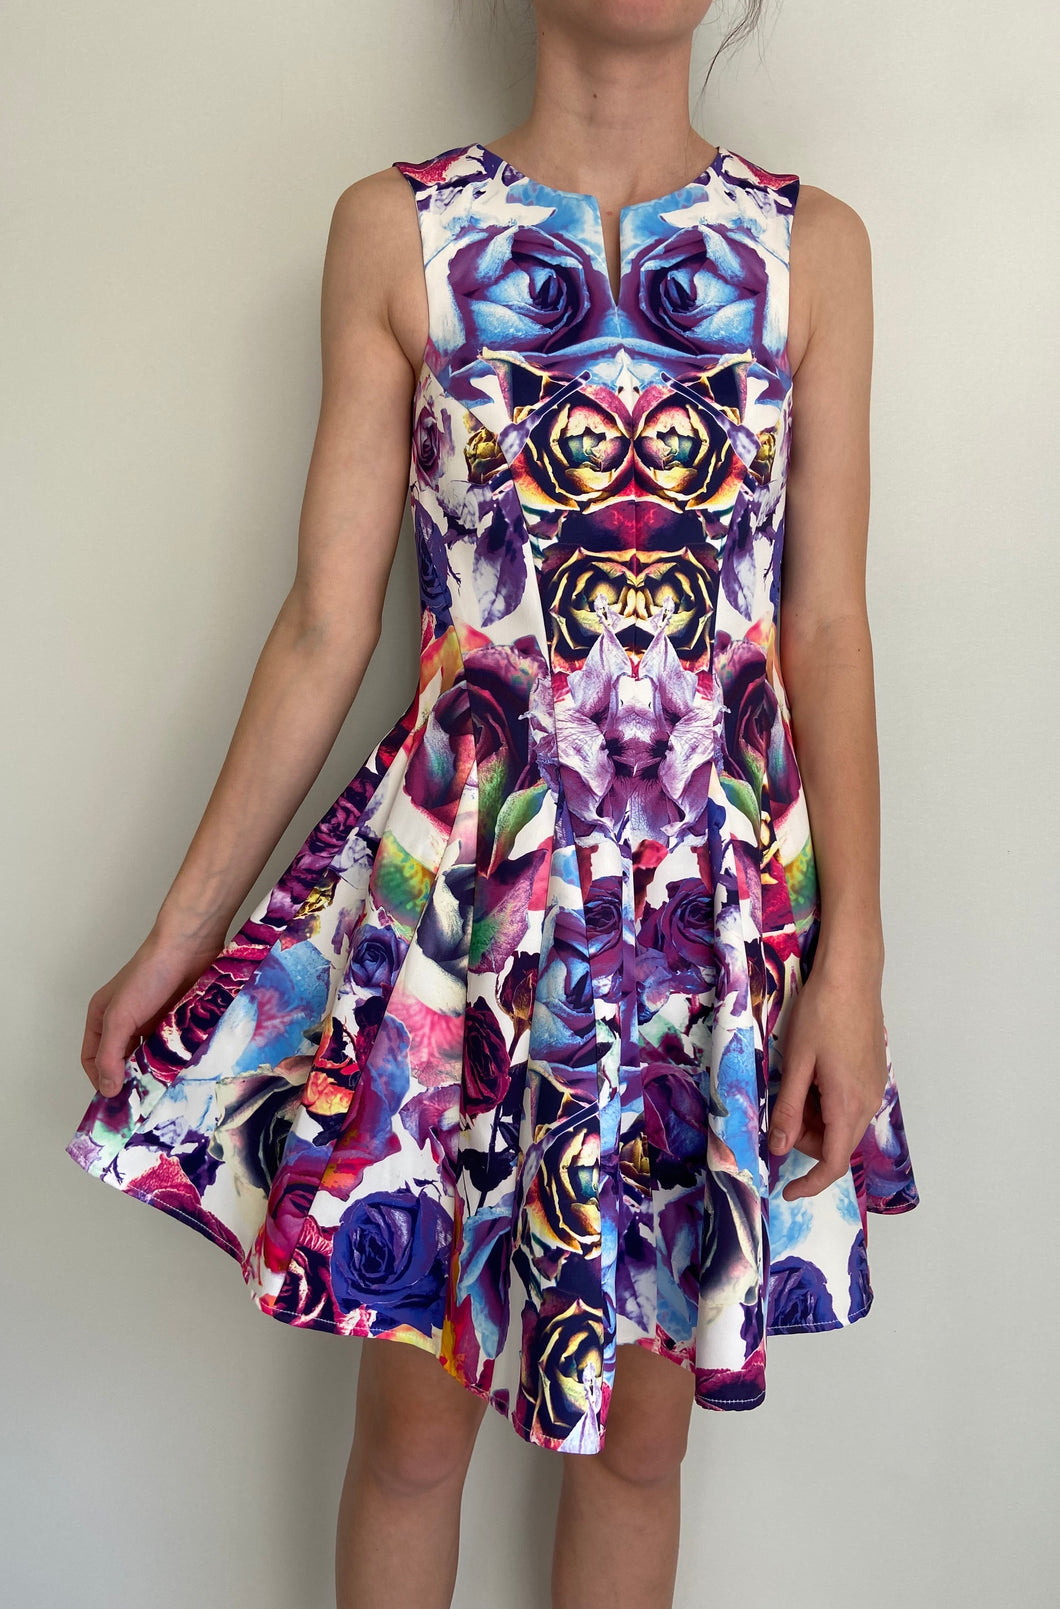 (Preloved) SARA PHILLIPS stunning Digital Printed A Line Dress Size 8